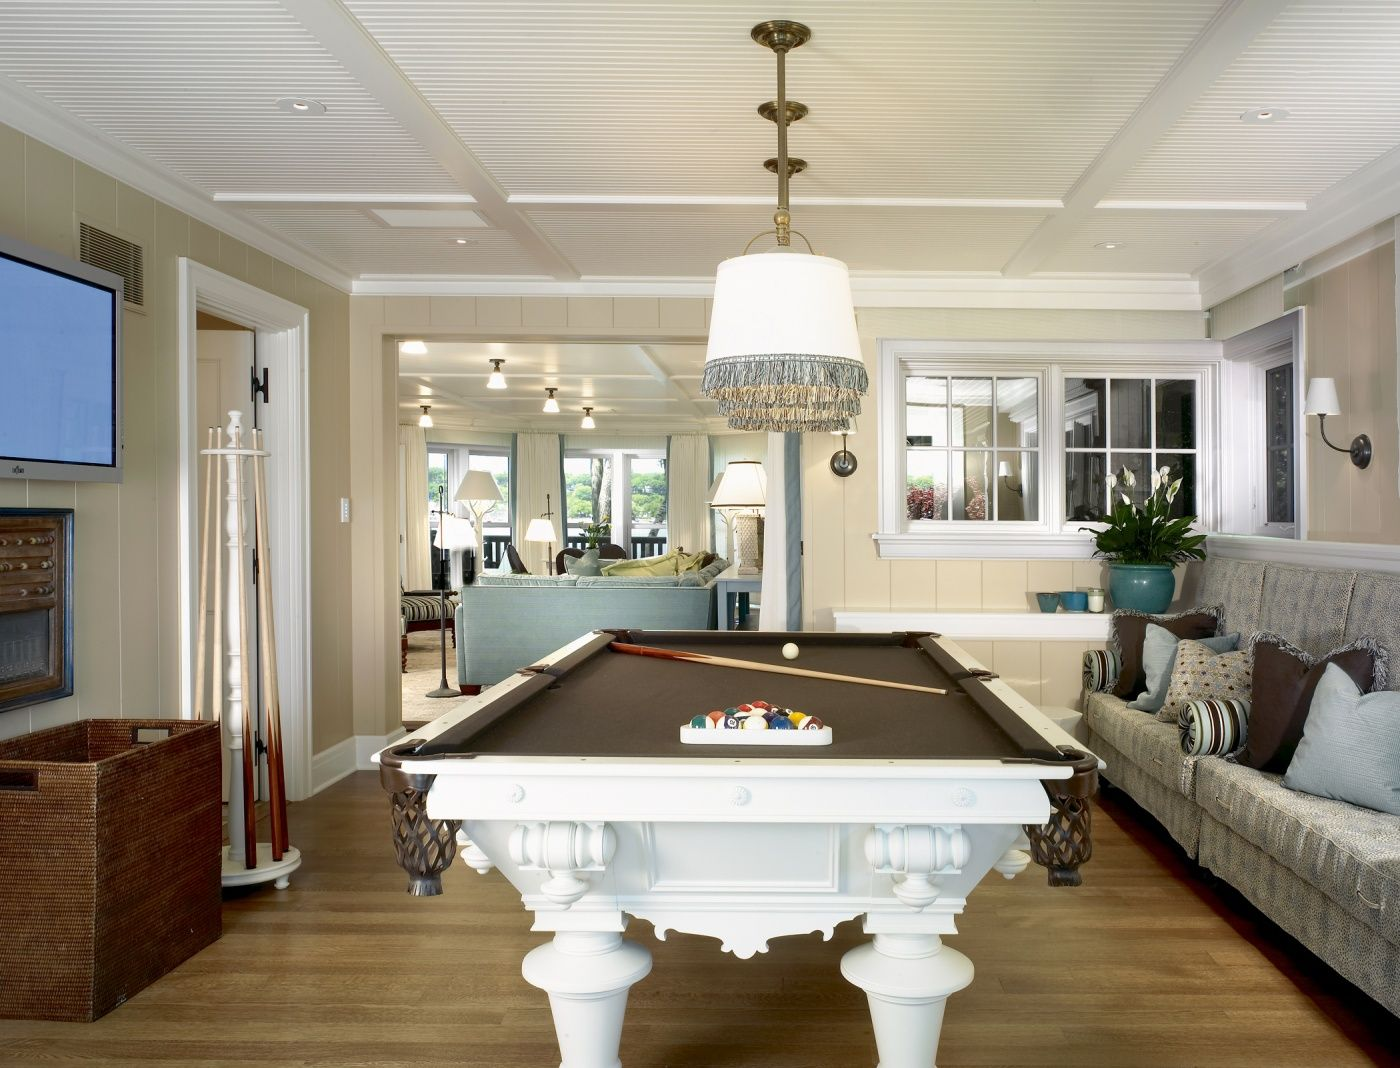 Pool tables are a fun accessory for your home, but they can suffer some wear and tear after years of play. white pool table - coastal style, Tom Stringer, Designer ...